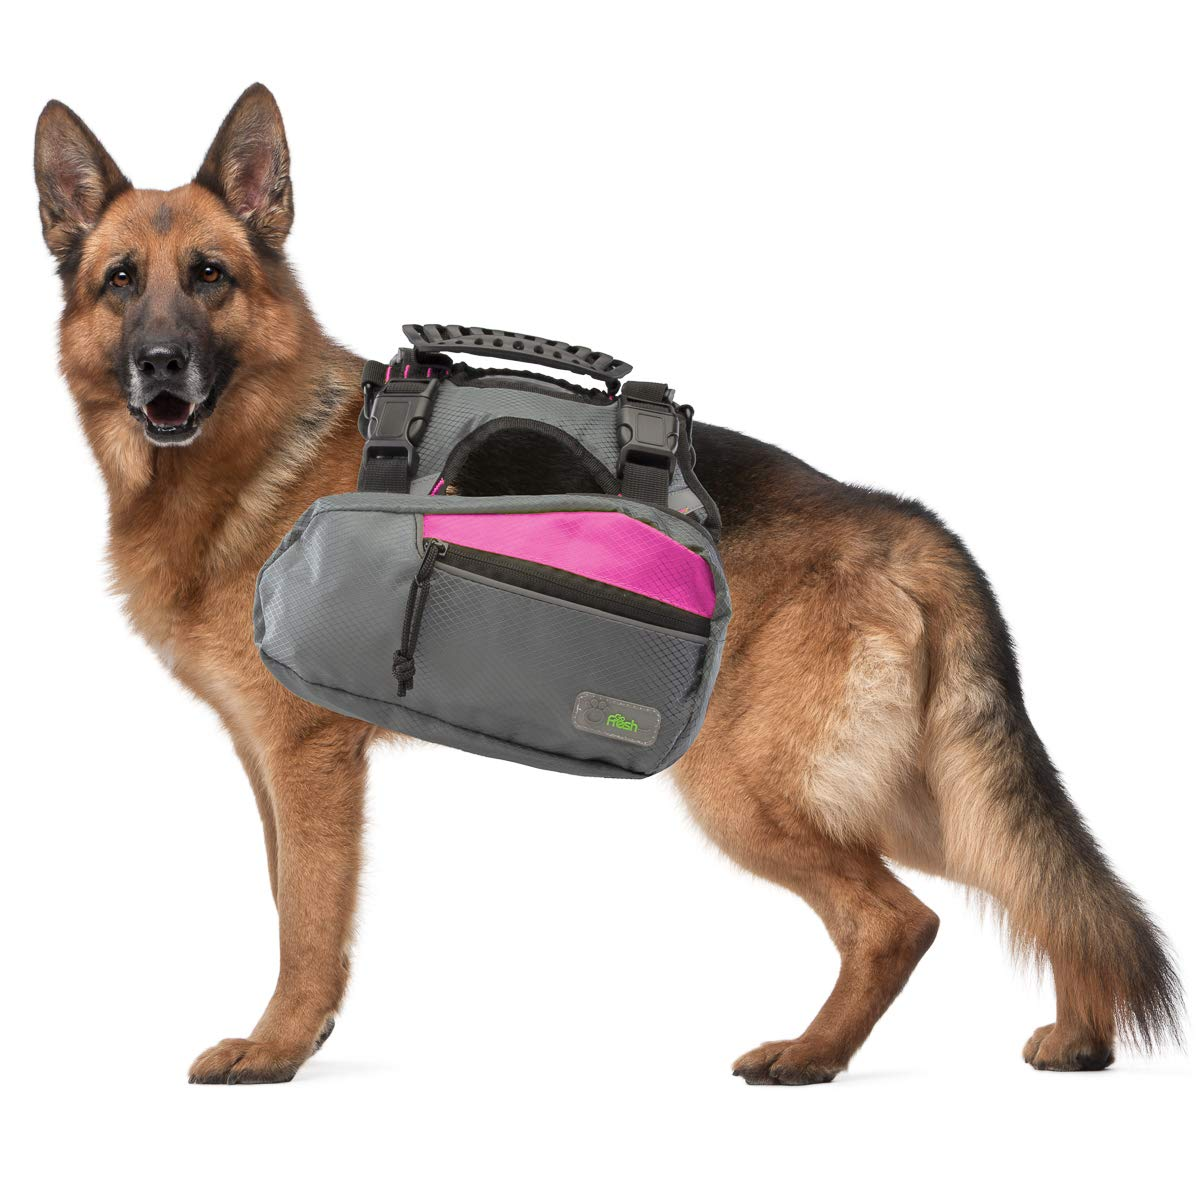 Go Fresh Pet Backpack Harness Hiking Saddlebags for Dogs to Wear Adjustable Dog Vest Harness Reflective